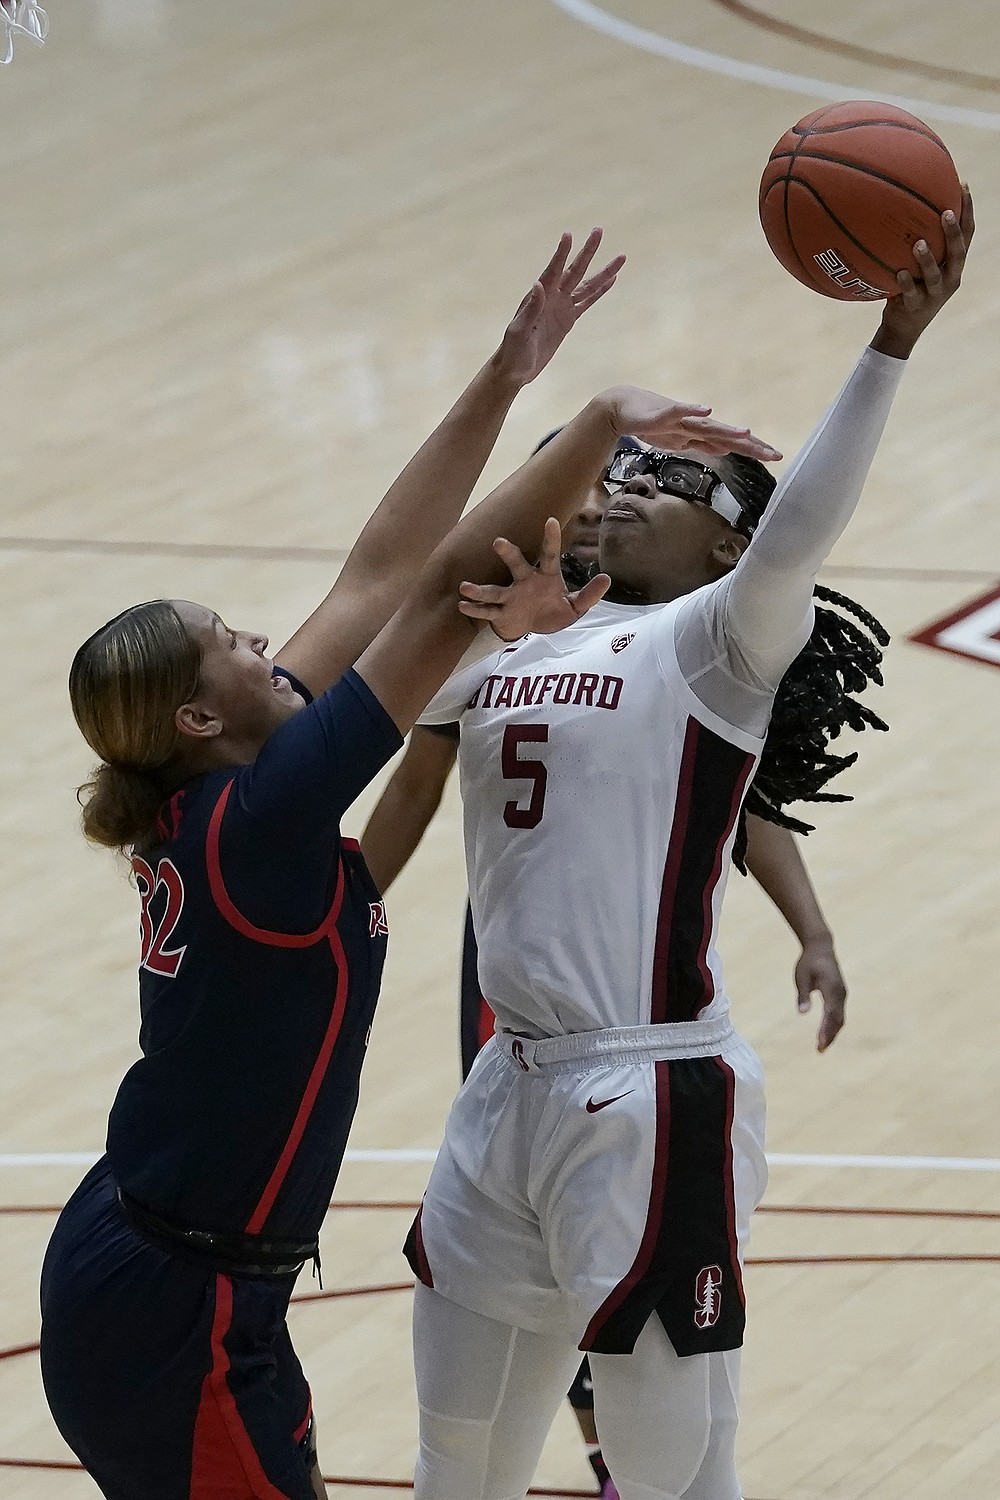 Stanford forward Francesca Belibi (5) shoots against Arizona forward Lauren Ware during the first half of an NCAA college basketball game in Stanford, Calif., Monday, Feb. 22, 2021. (AP Photo/Jeff Chiu)